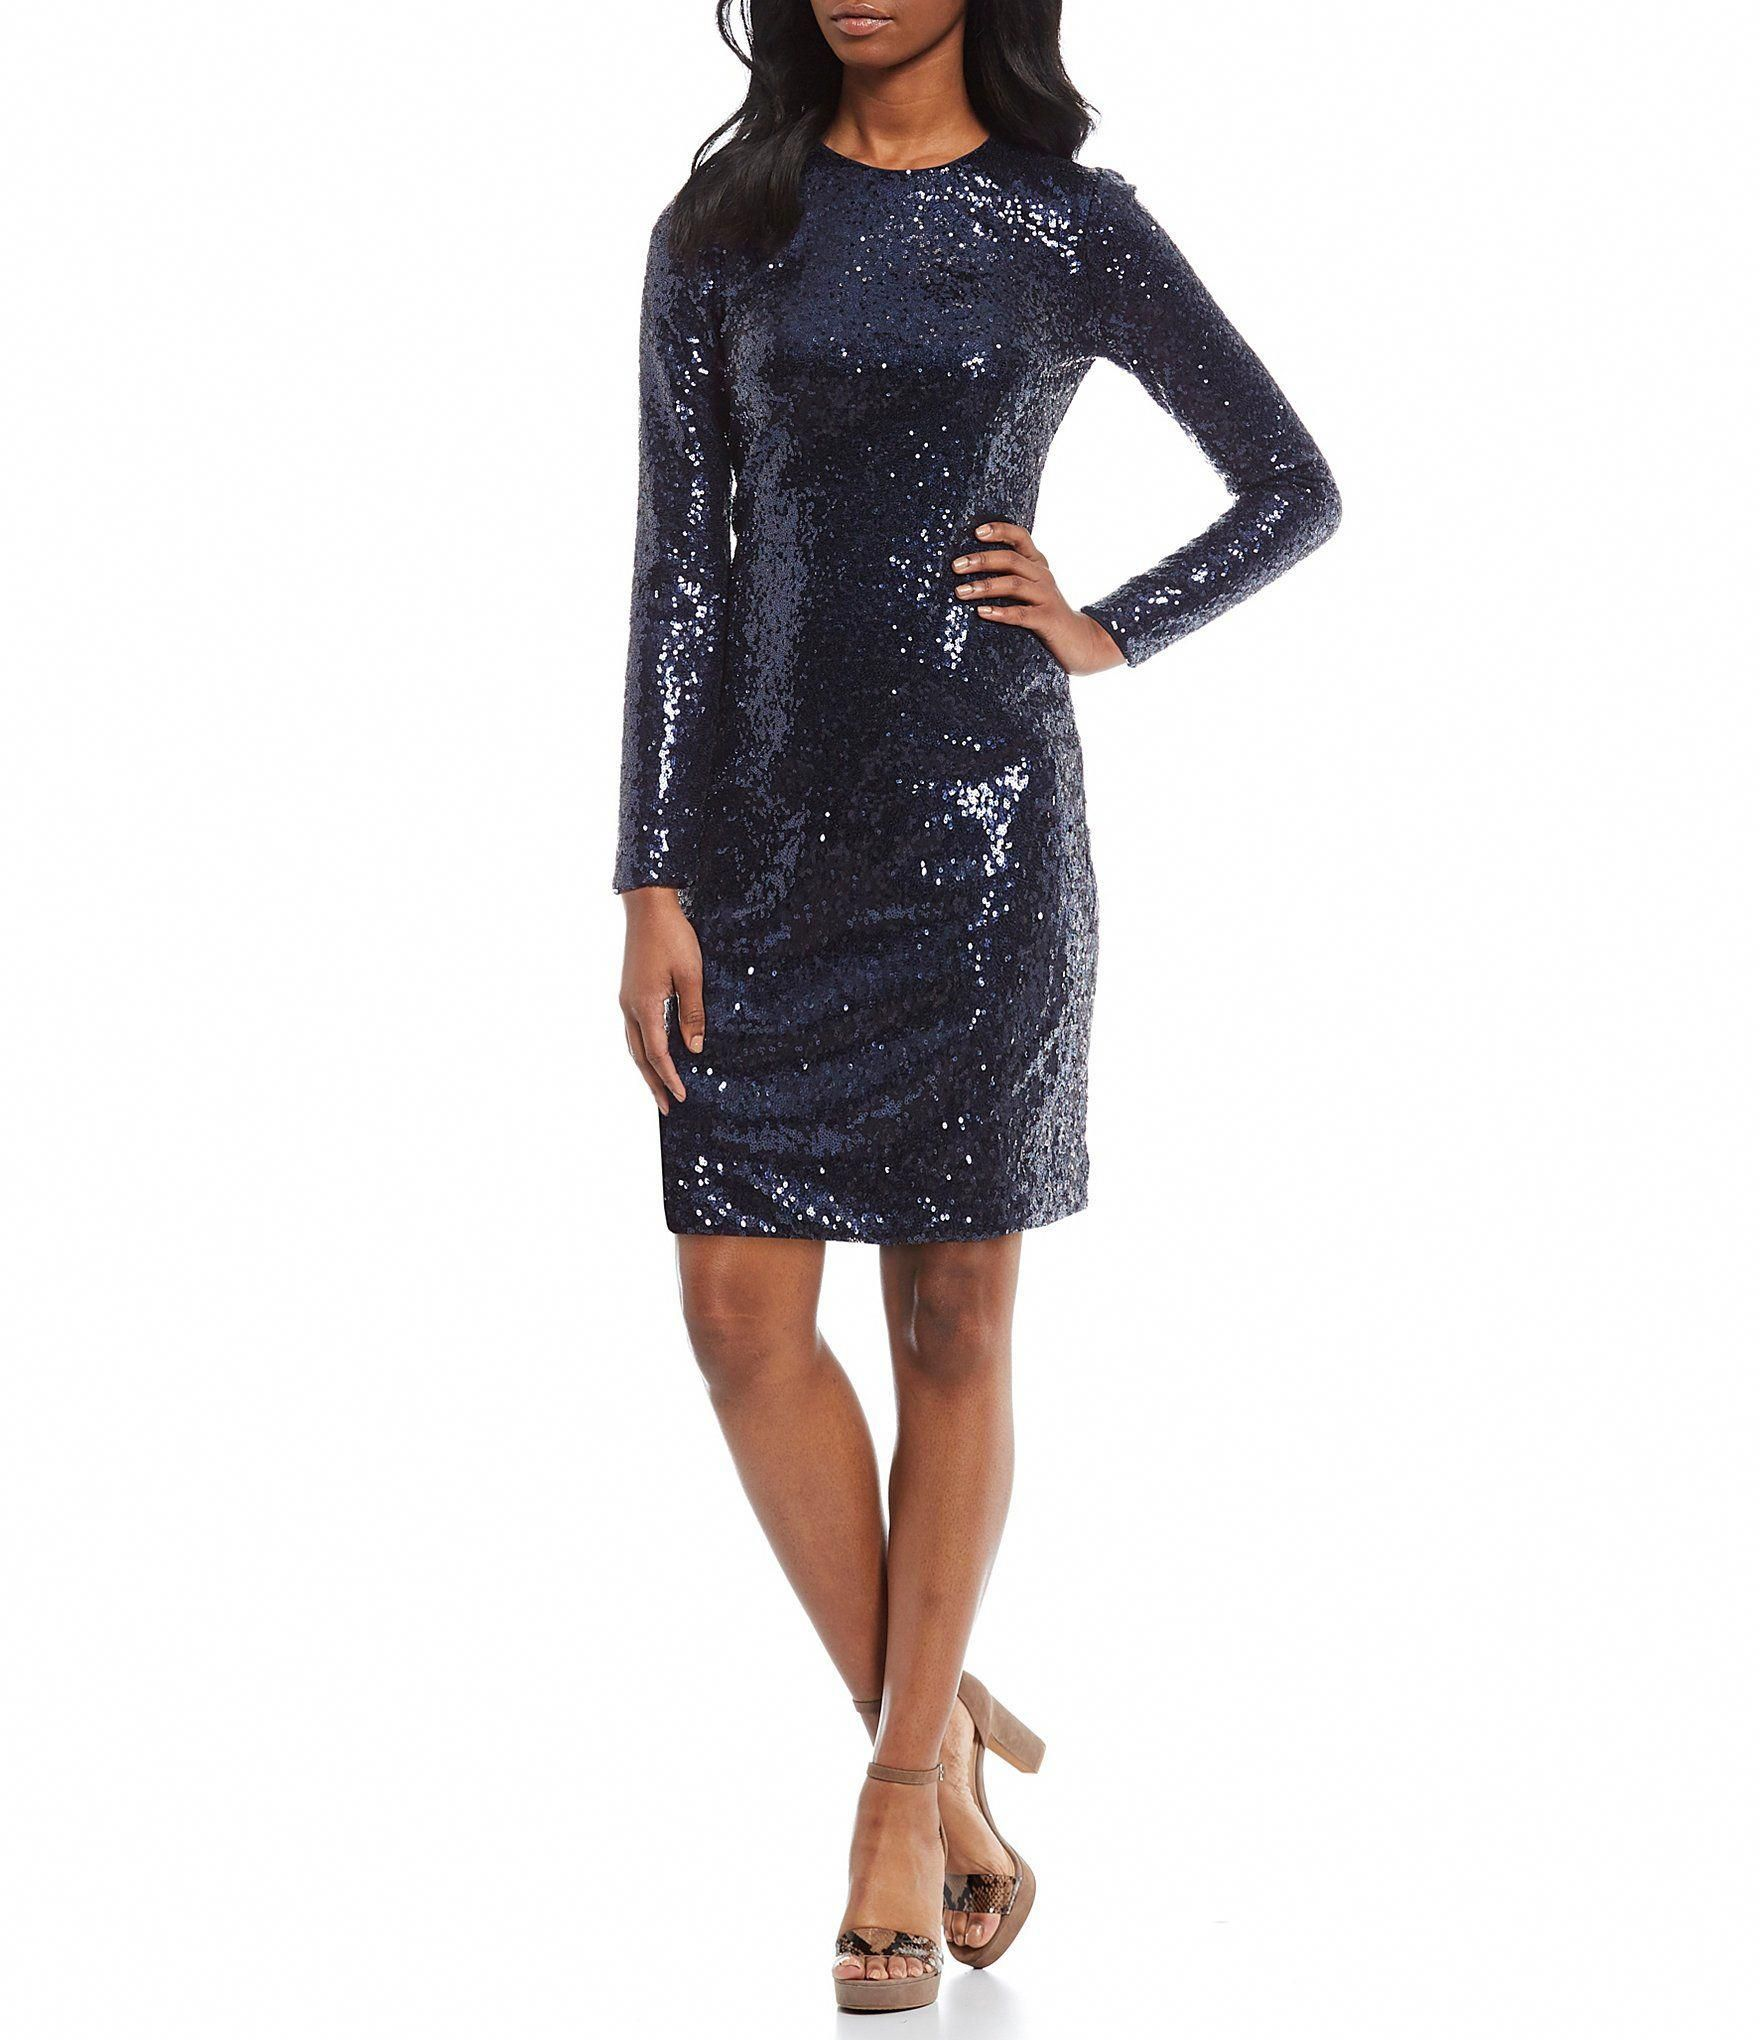 Vince Camuto Long Sleeve Allover Sequined Sheath Dress Navy 2 Longsleevecocktaildresses Long Sleeve Cocktail Dress Pink Sheath Dress Dresses [ 2040 x 1760 Pixel ]